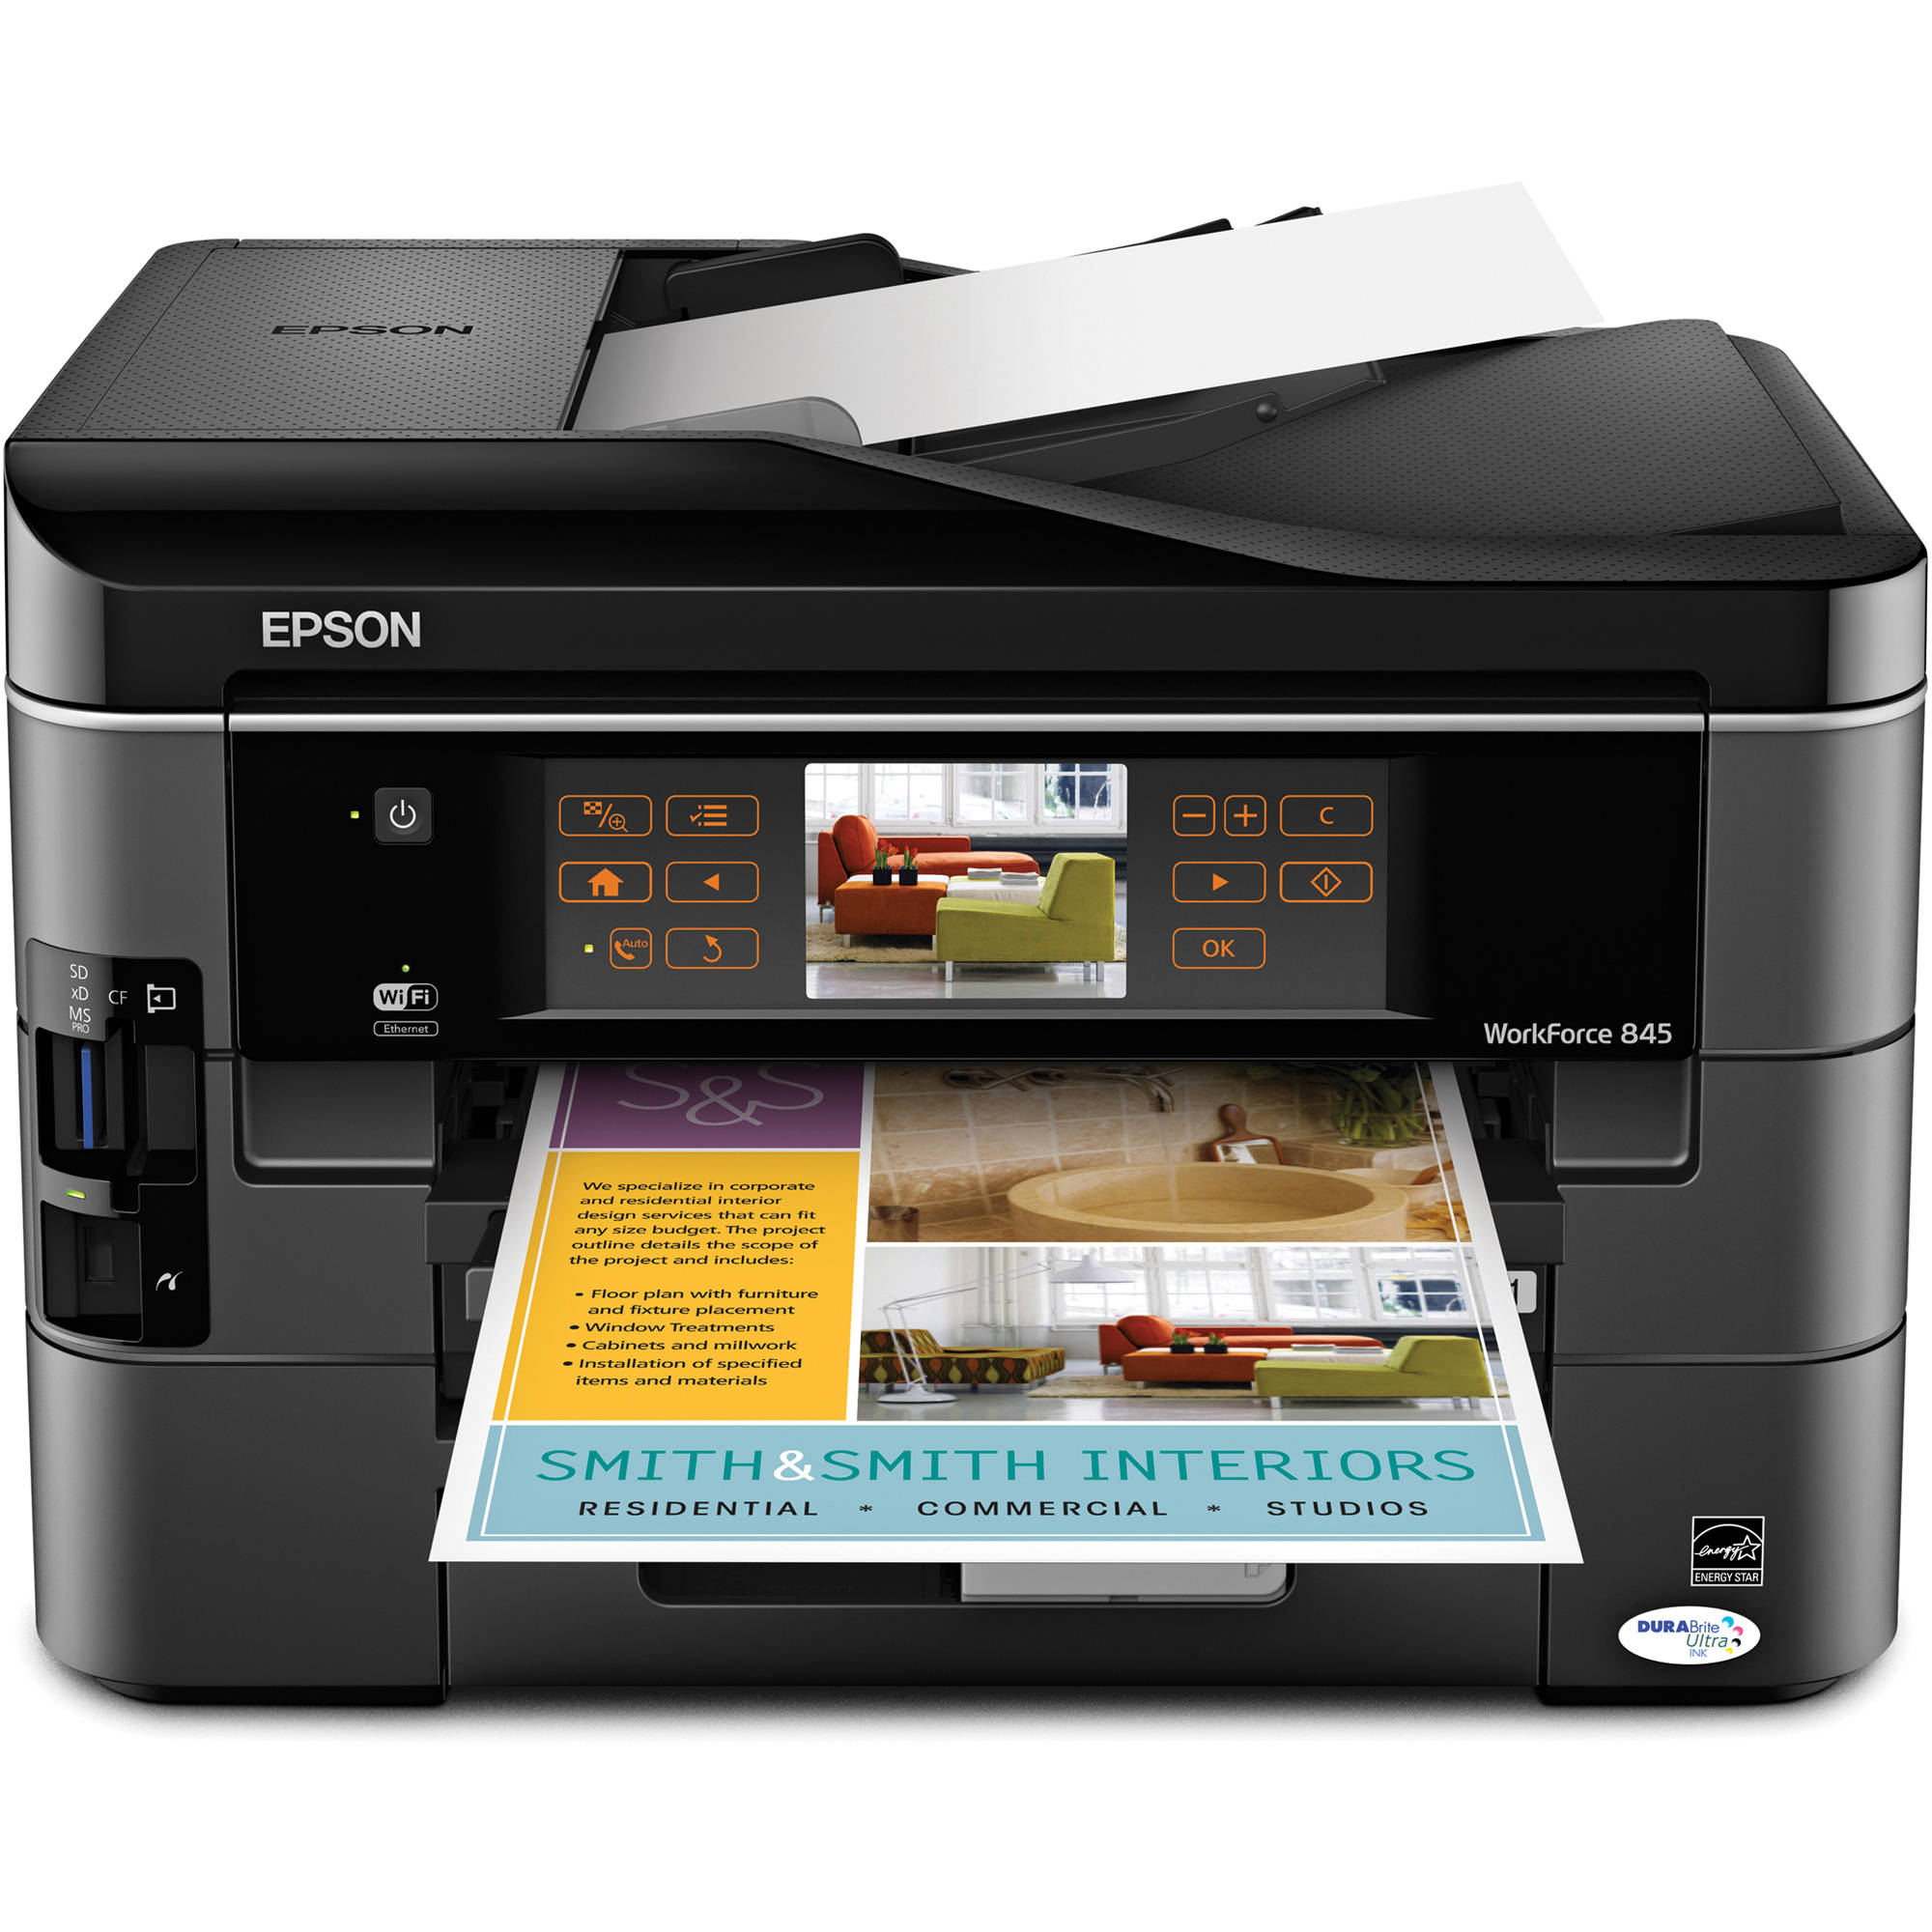 Epson WorkForce 845 All-in-One Color Inkjet Printer